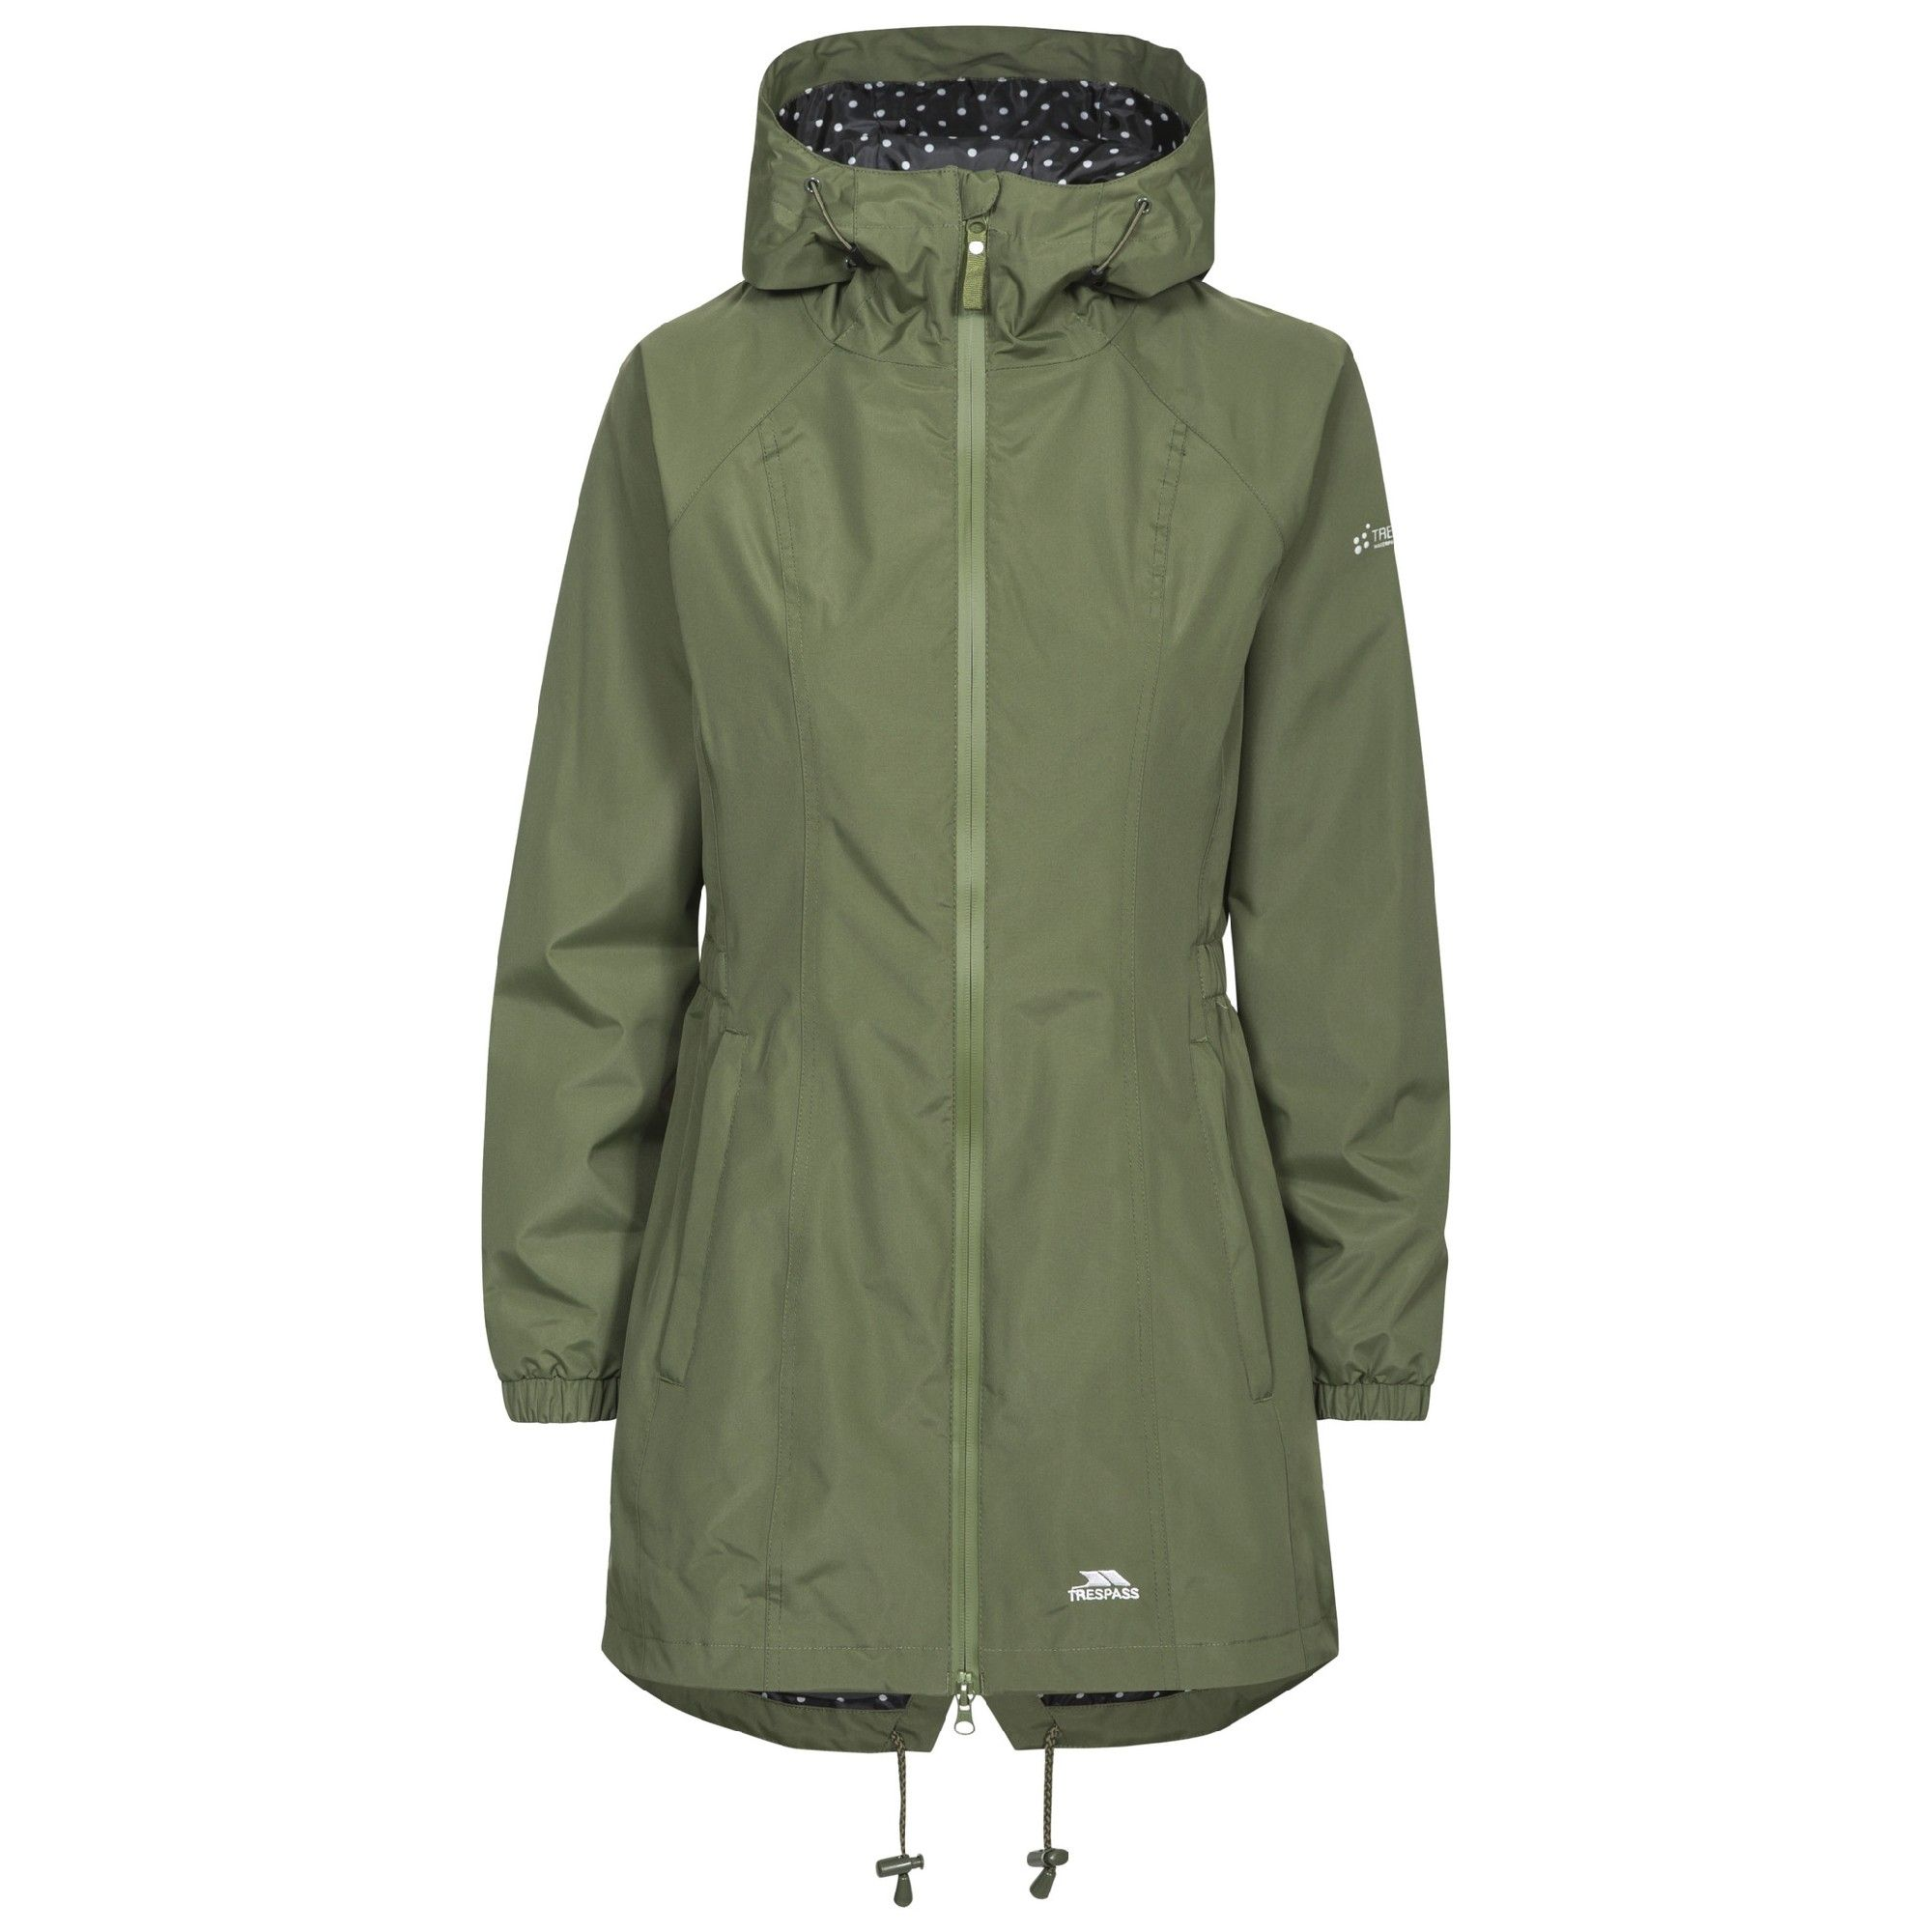 Trespass Womens/Ladies Waterproof Shell Jacket